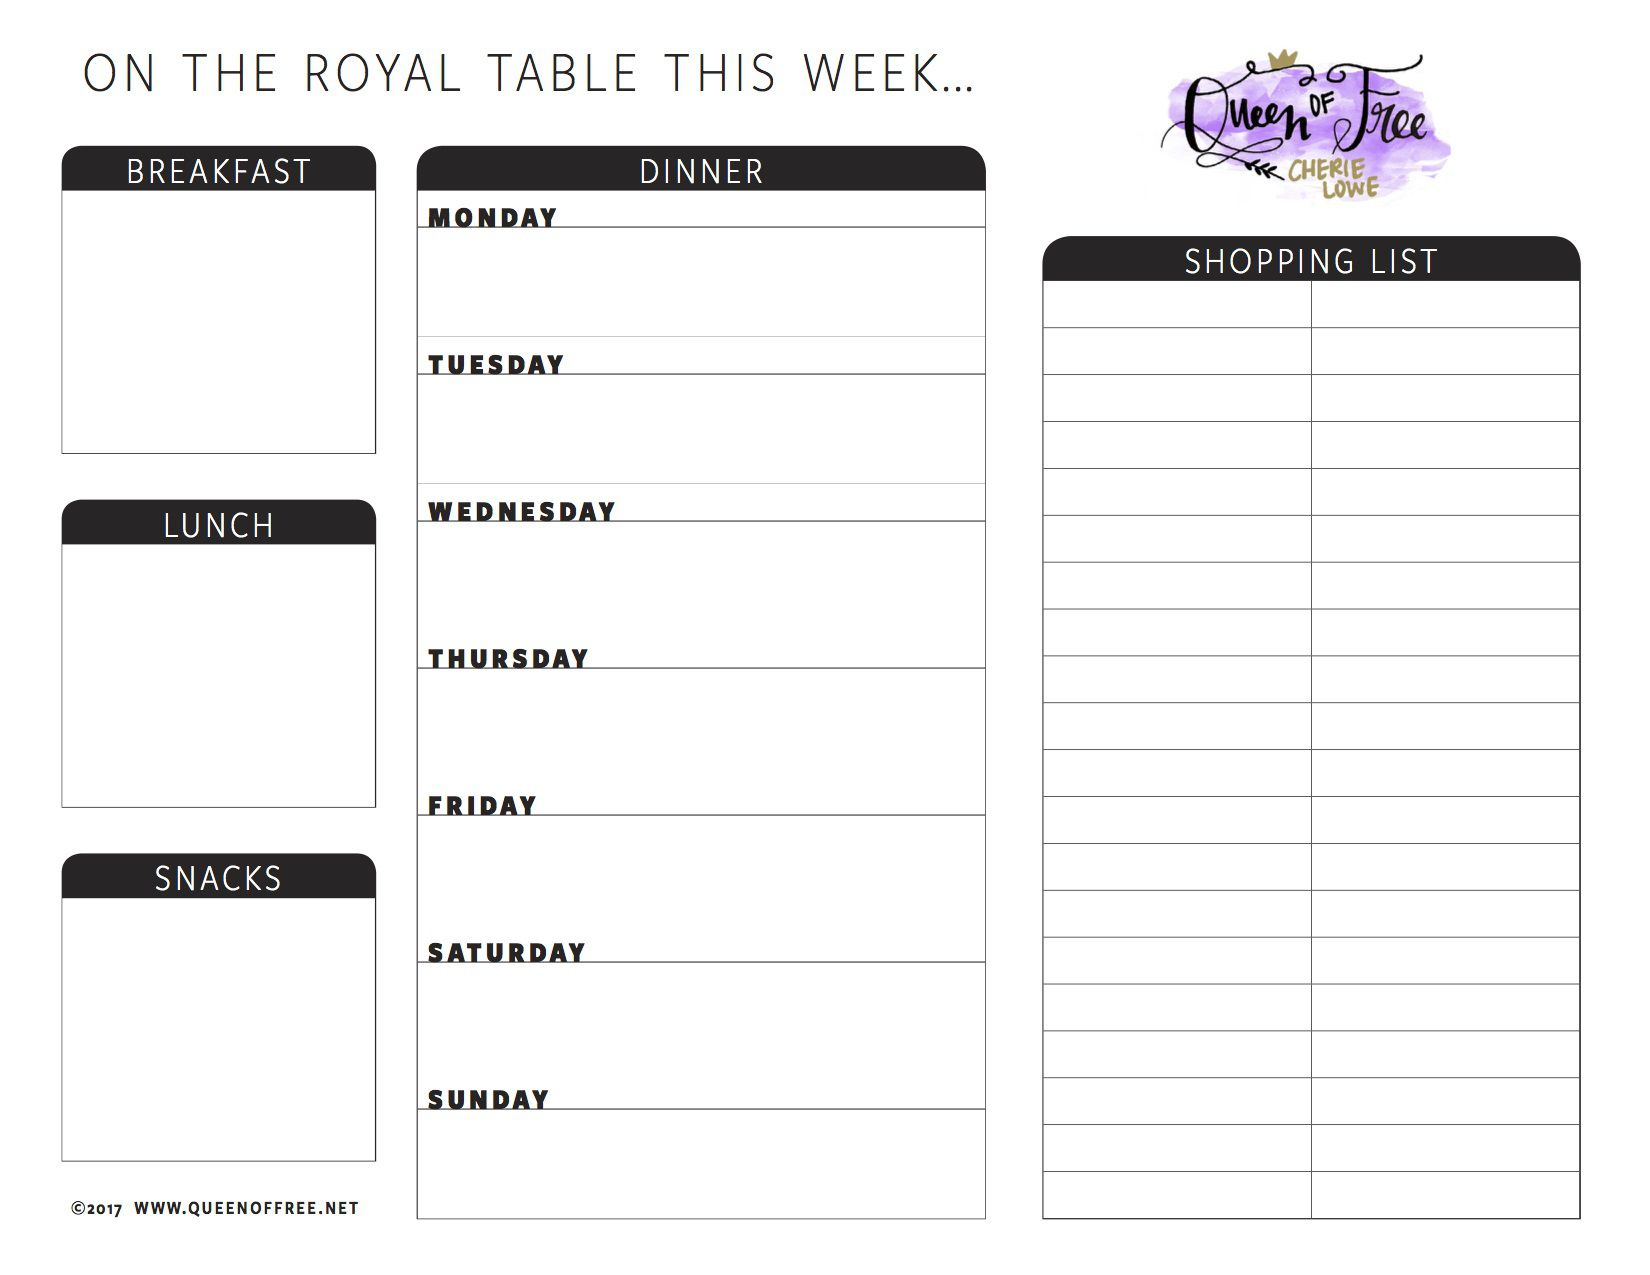 008 Best Free Food Planner Template Image  Printable Weekly Meal With Grocery List Diary Download Editable WordFull